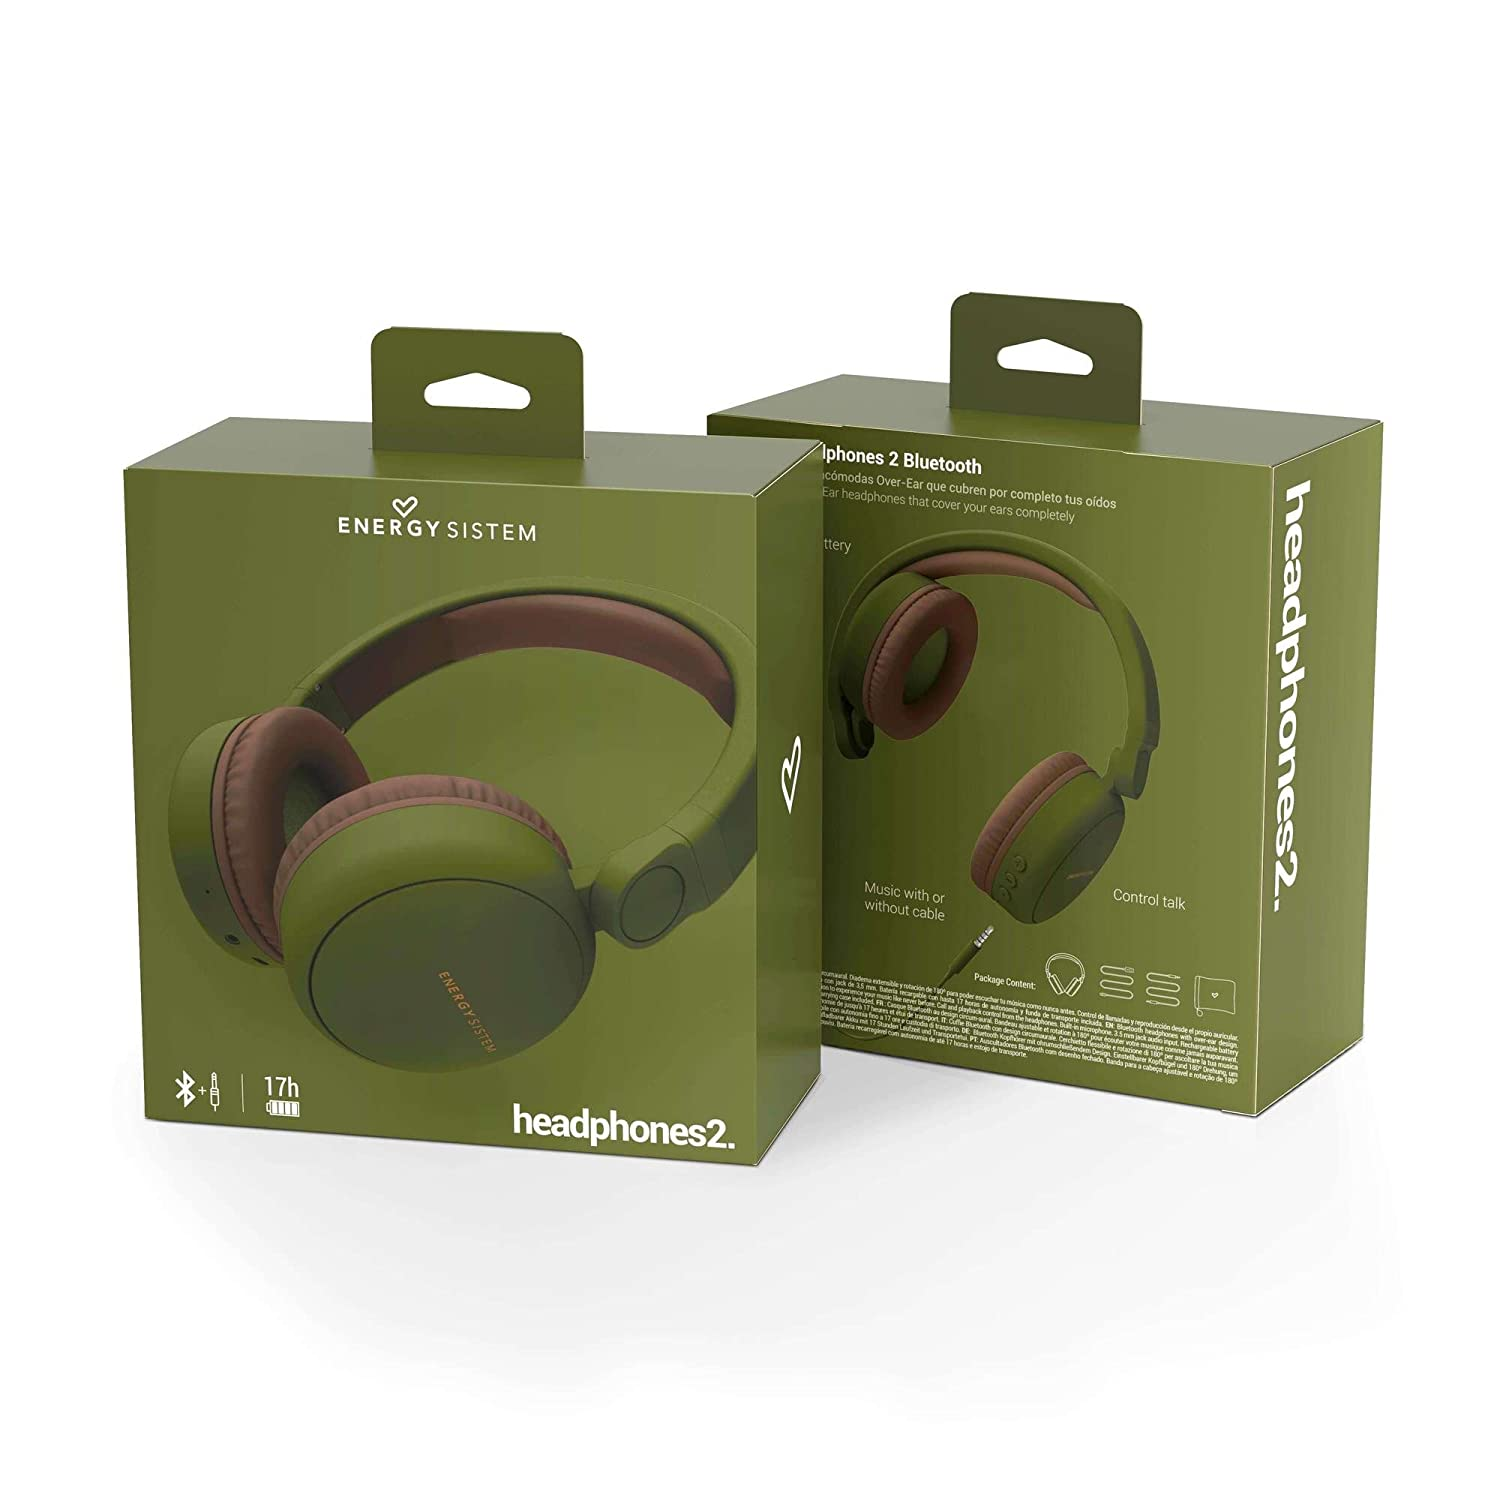 Energy Sistem Headphones 2 - Auriculares con Bluetooth (Over-Ear, Audio-In, Long Battery Life, 180 Plegable) Verde: Energy-Sistem: Amazon.es: Electrónica